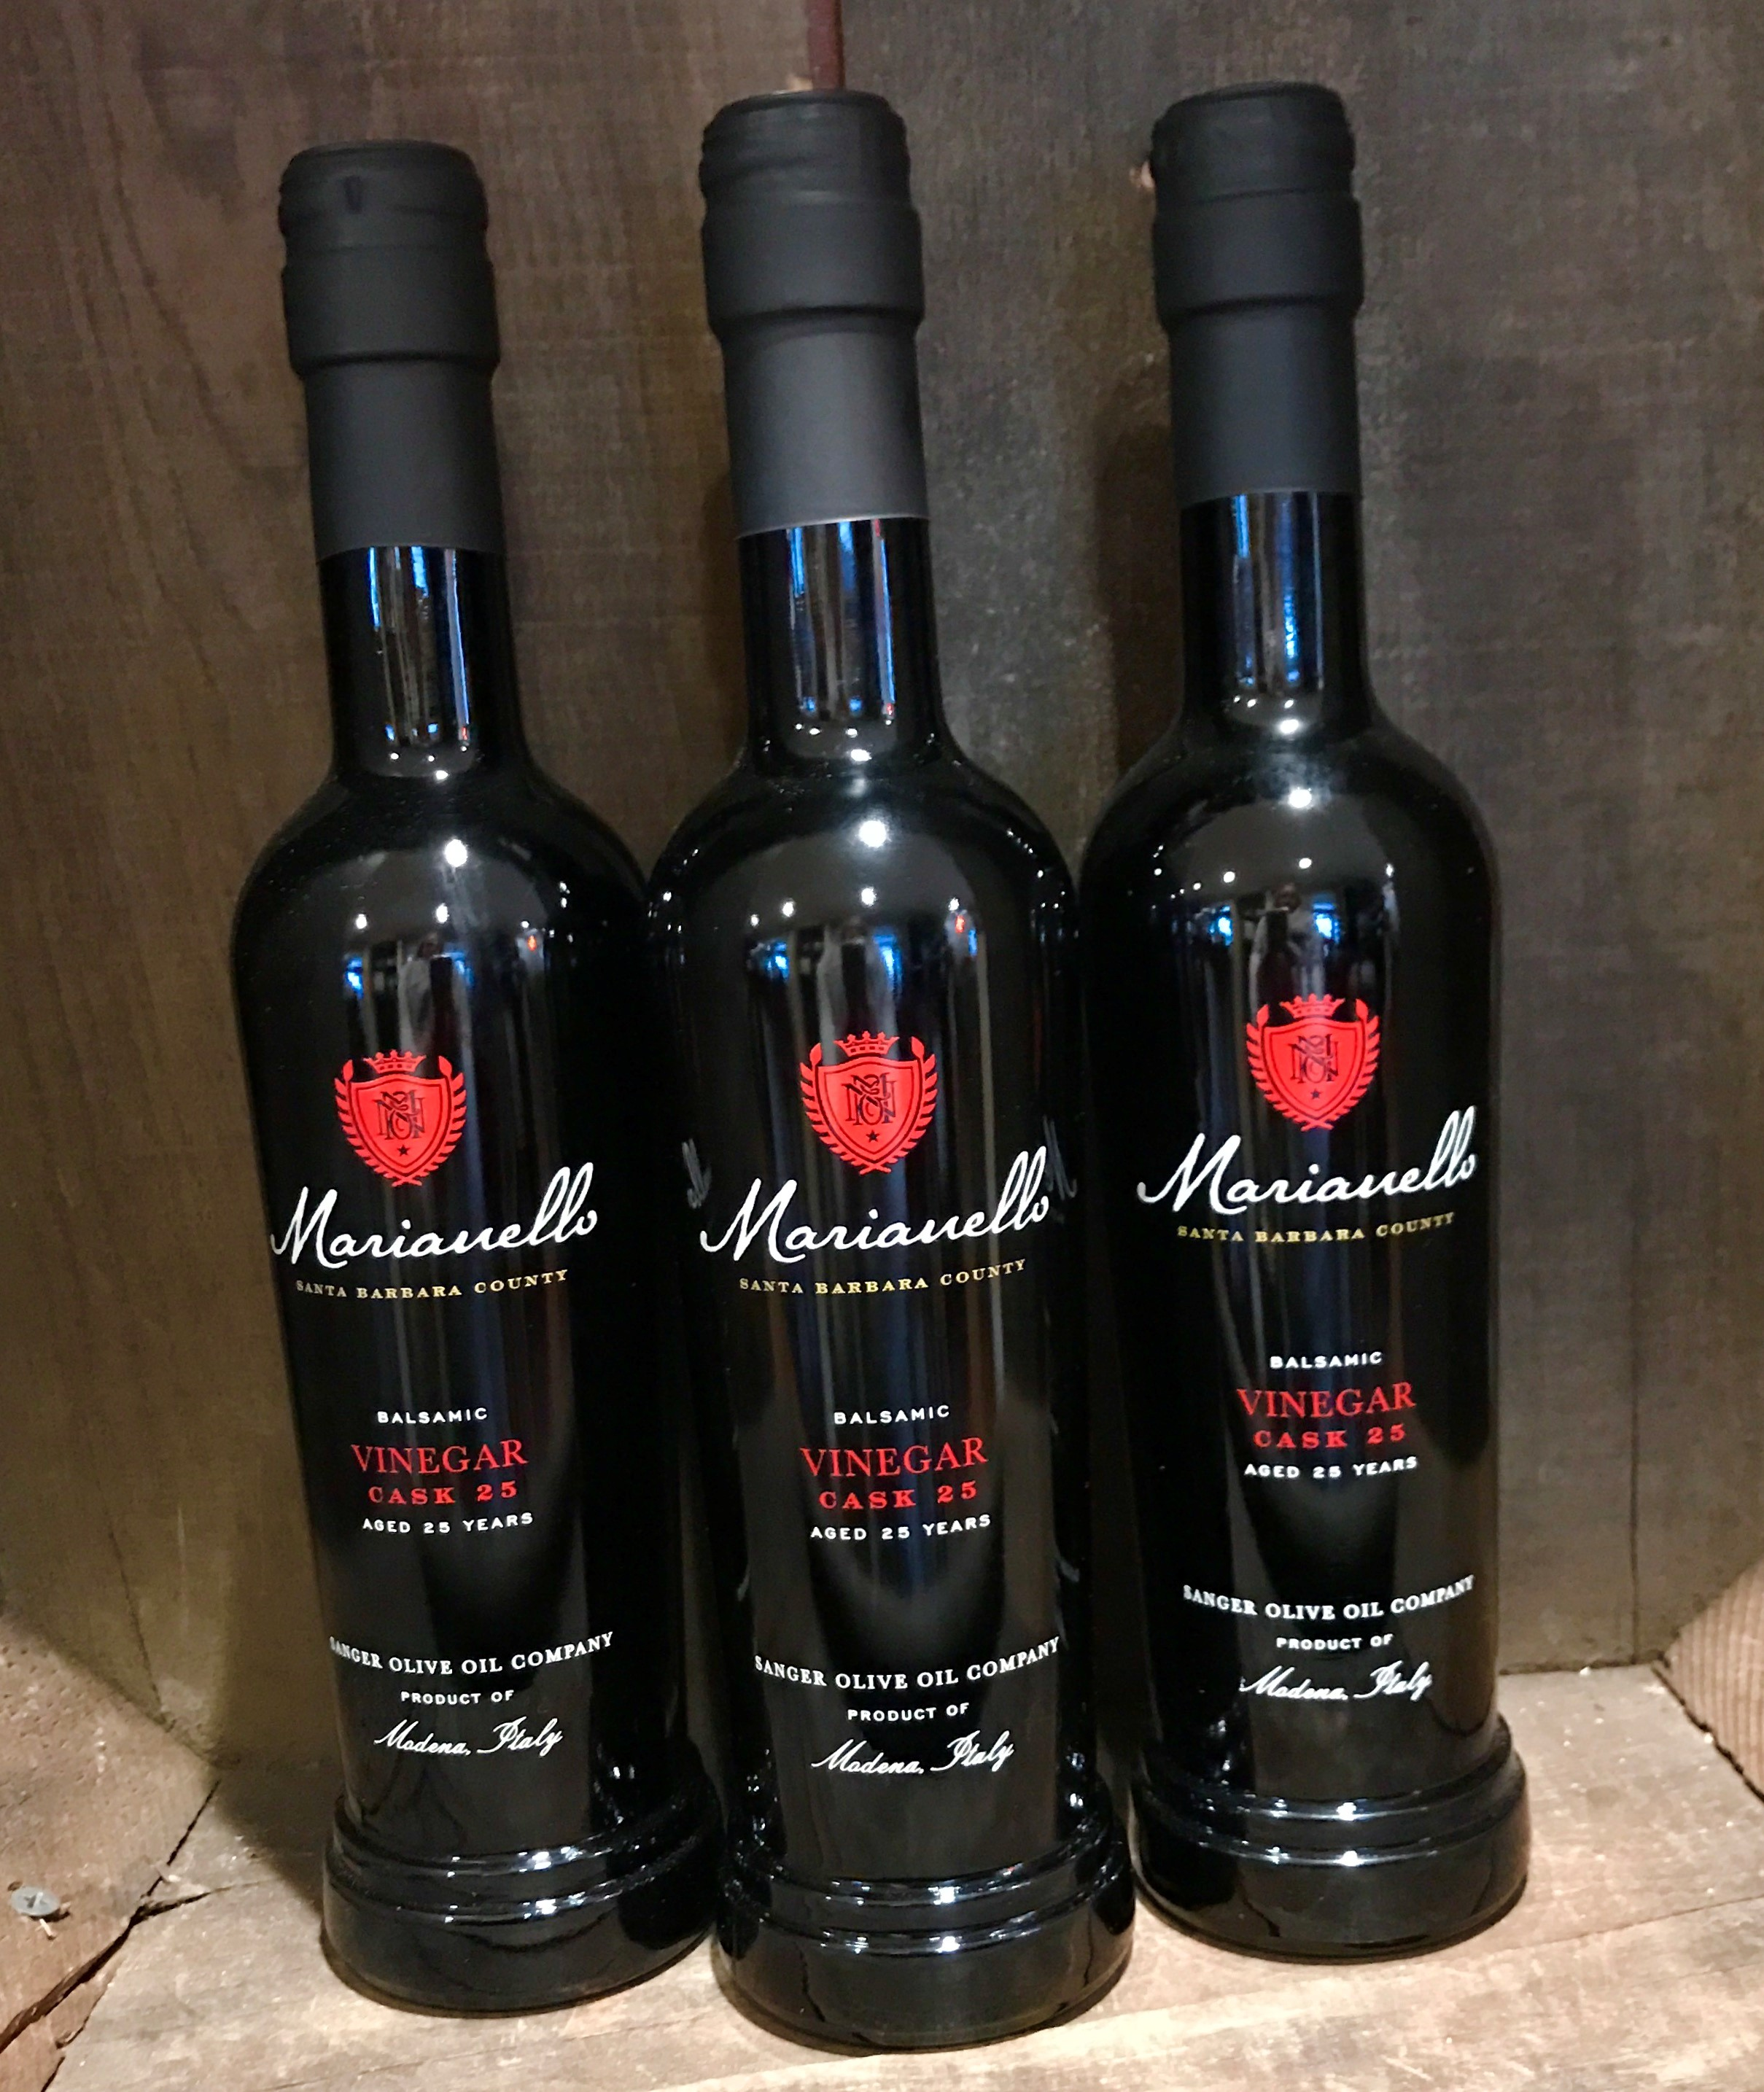 2015 Marianello Balsamic Cask 25 Years